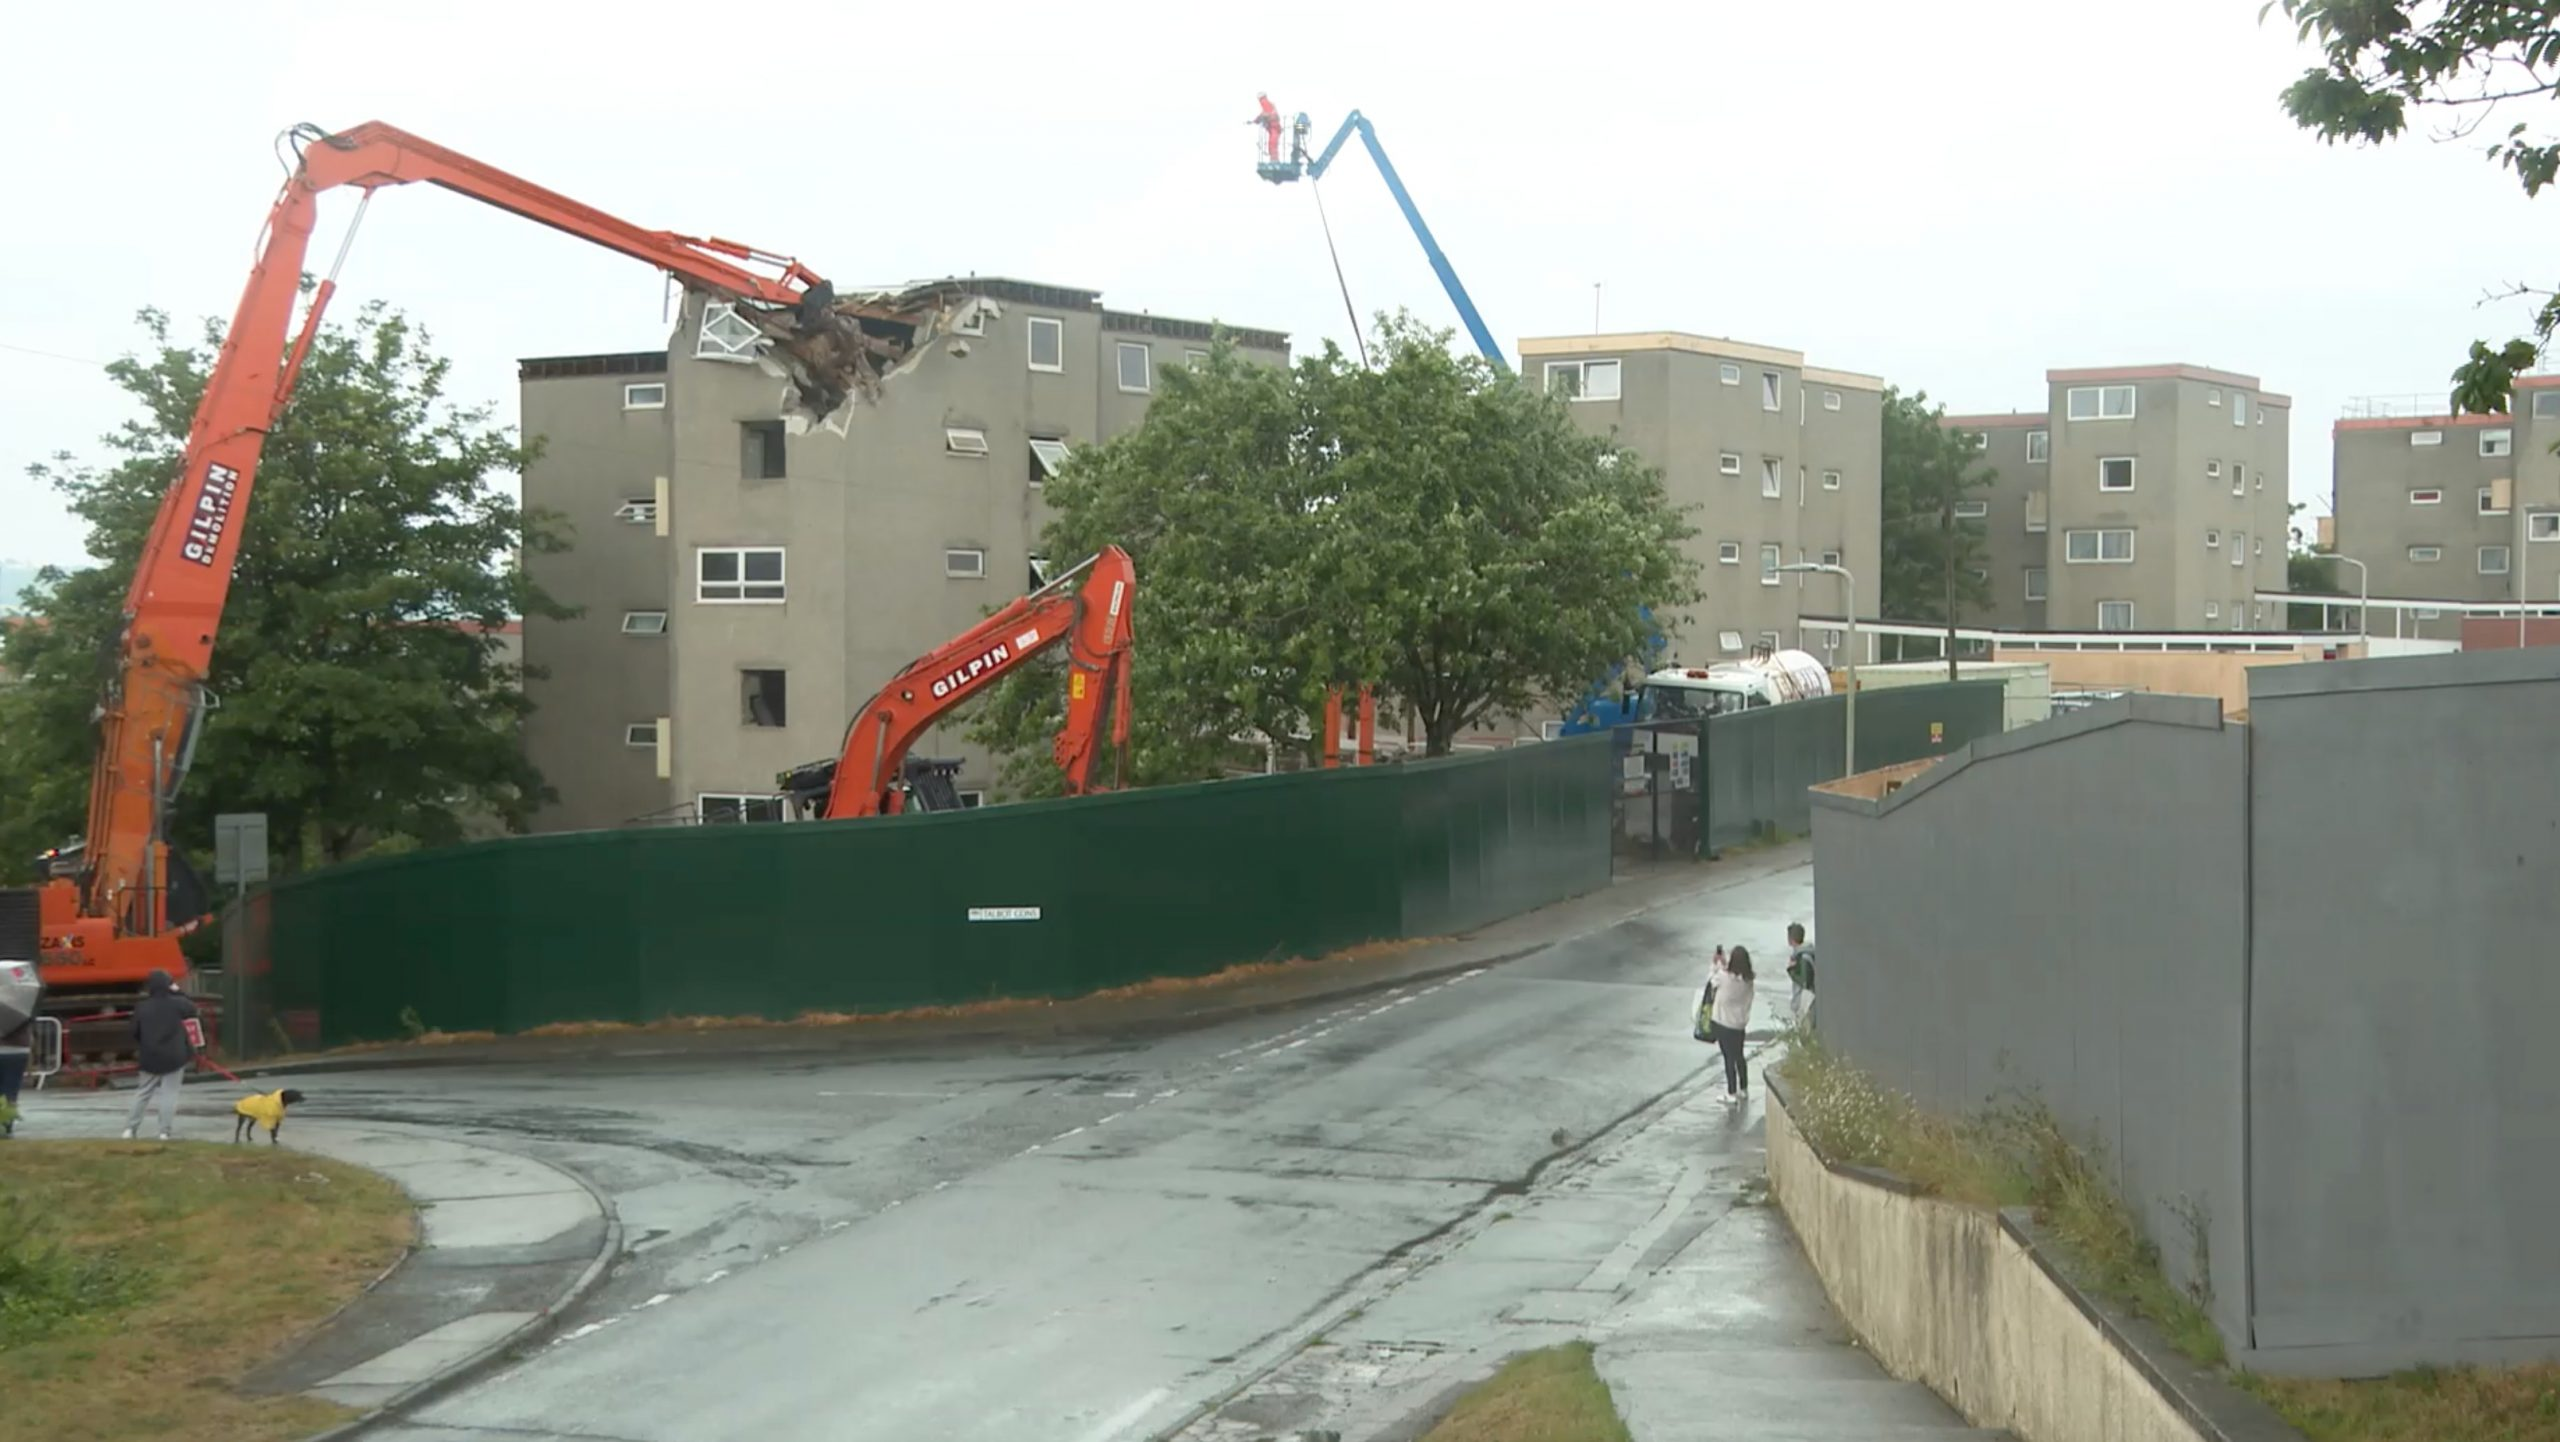 End Of An Era For Plymouth Community As Demolition Begins On Barne Barton Estate photo